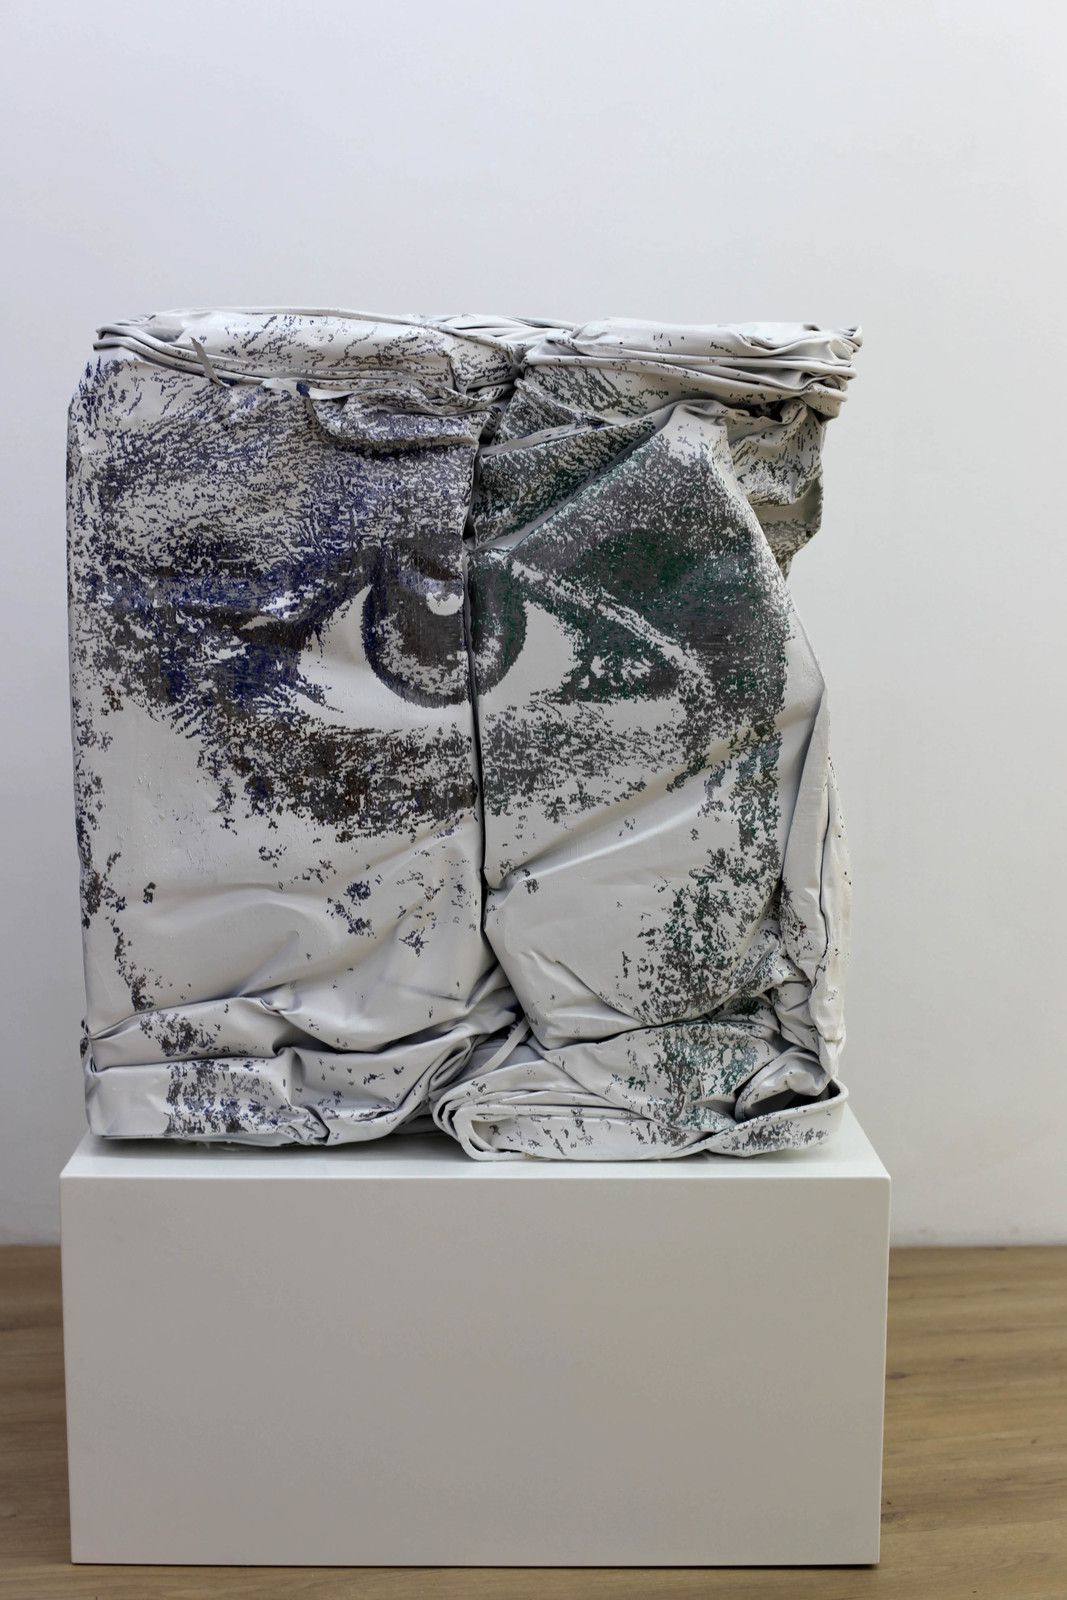 """Contract Serie #1"", 2020 de VHILS - Courtesy Galerie Danysz - Paris © Photo Éric Simon"